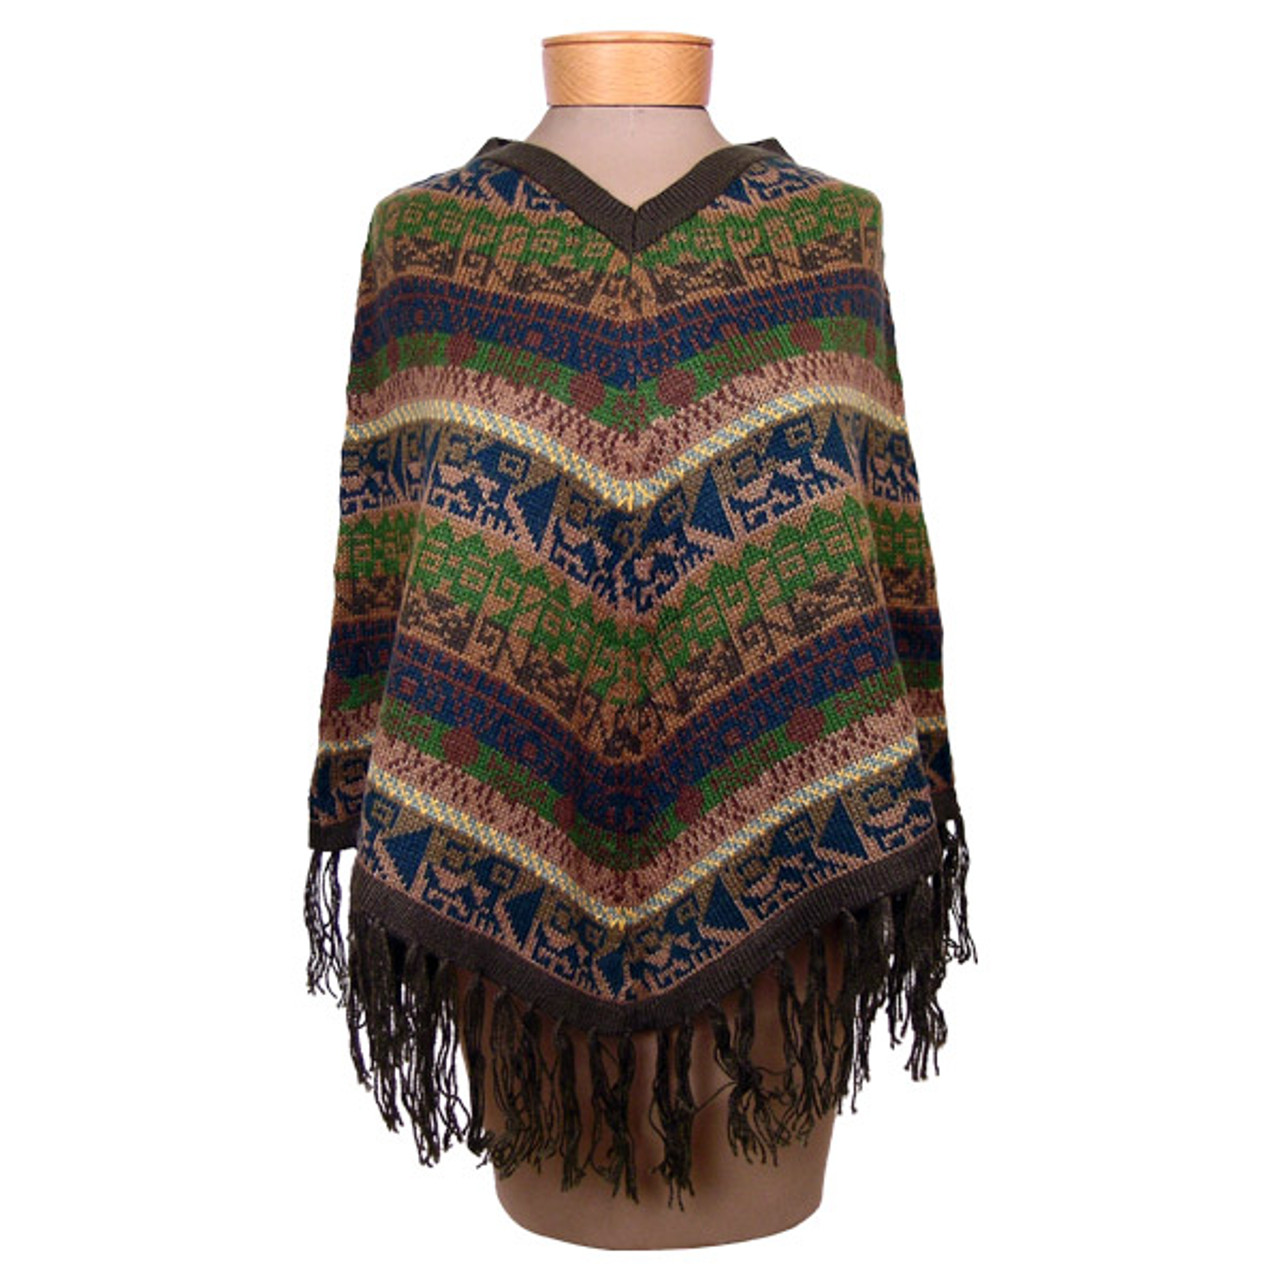 e6b73a025 V Shaped Striped/Geometric Poncho Alpaca 100% Fine Knit - Incazteca